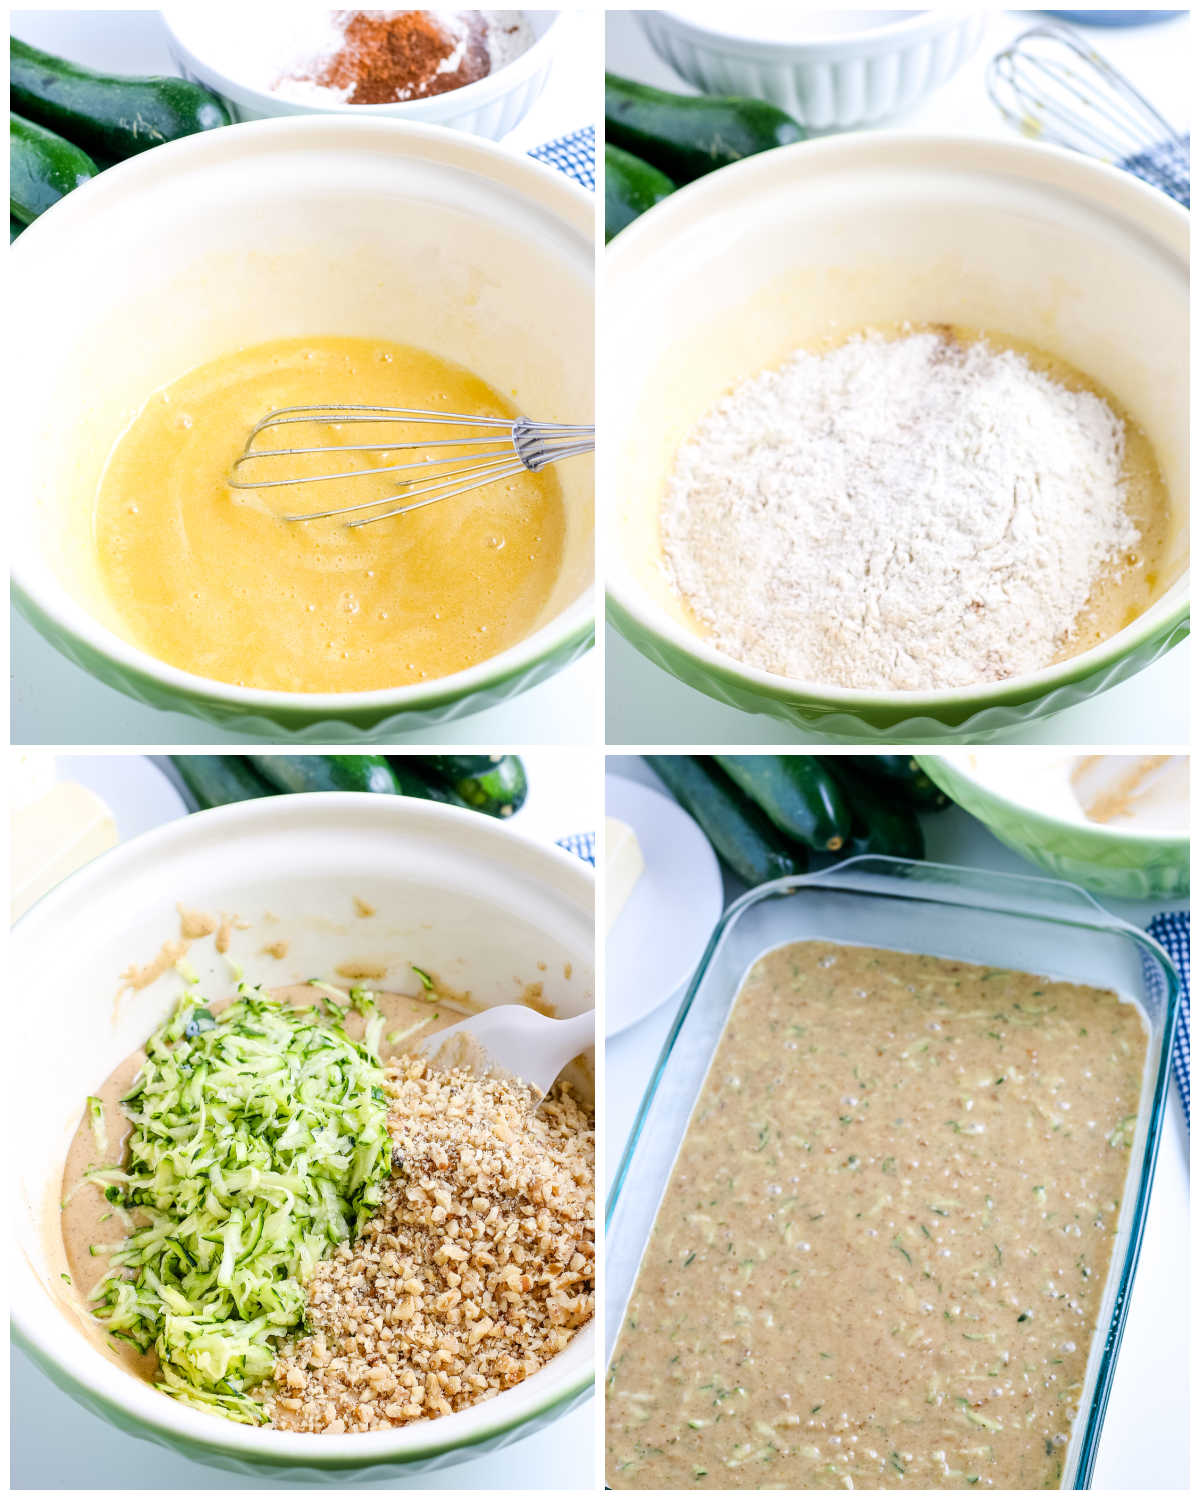 A picture collage of how to make this Zucchini Cake recipe.